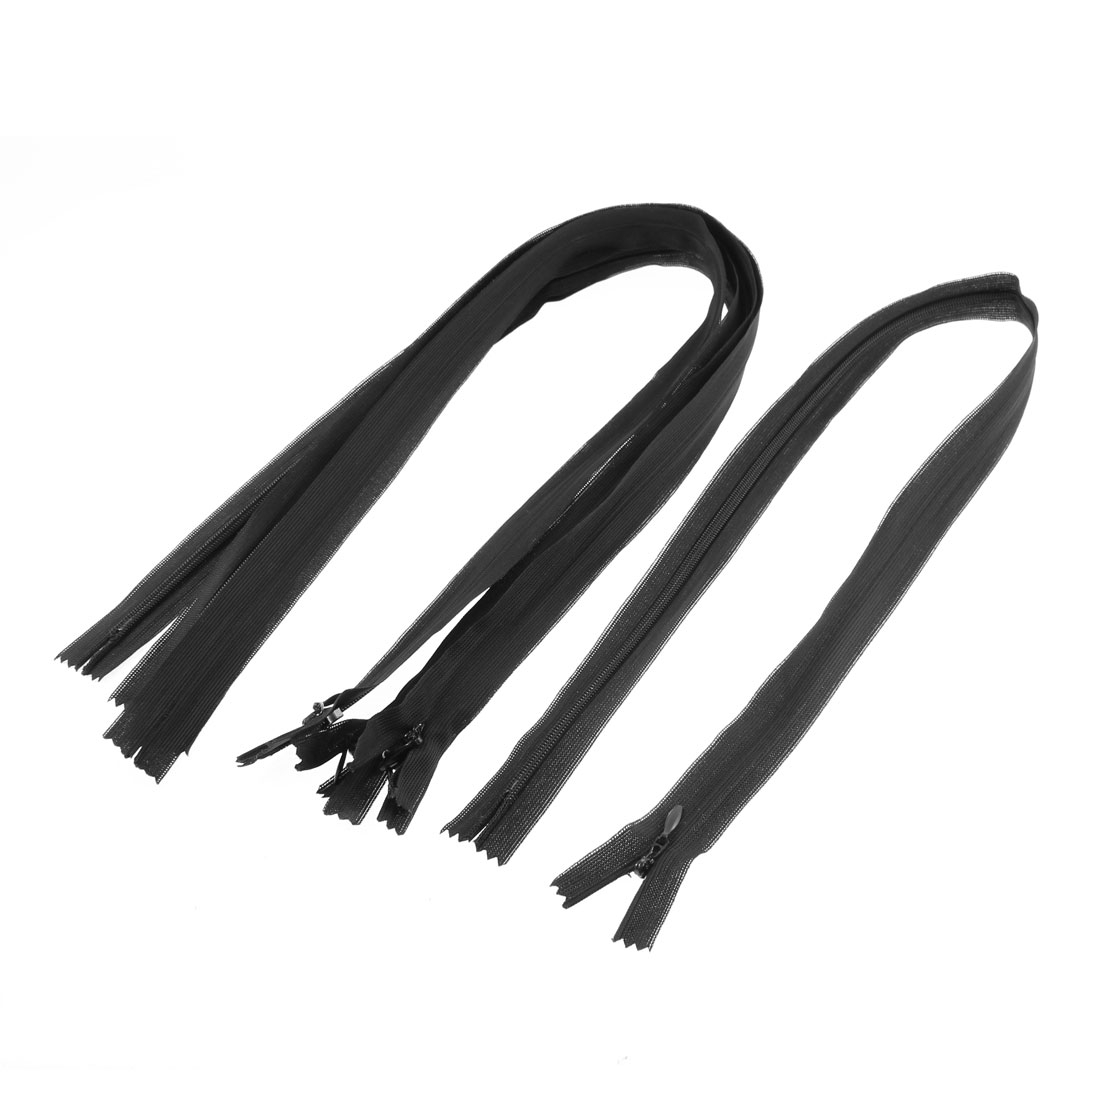 Unique Bargains 24-inch 5 Pcs Nylon Dress Zippers Tailor Sewing Tools